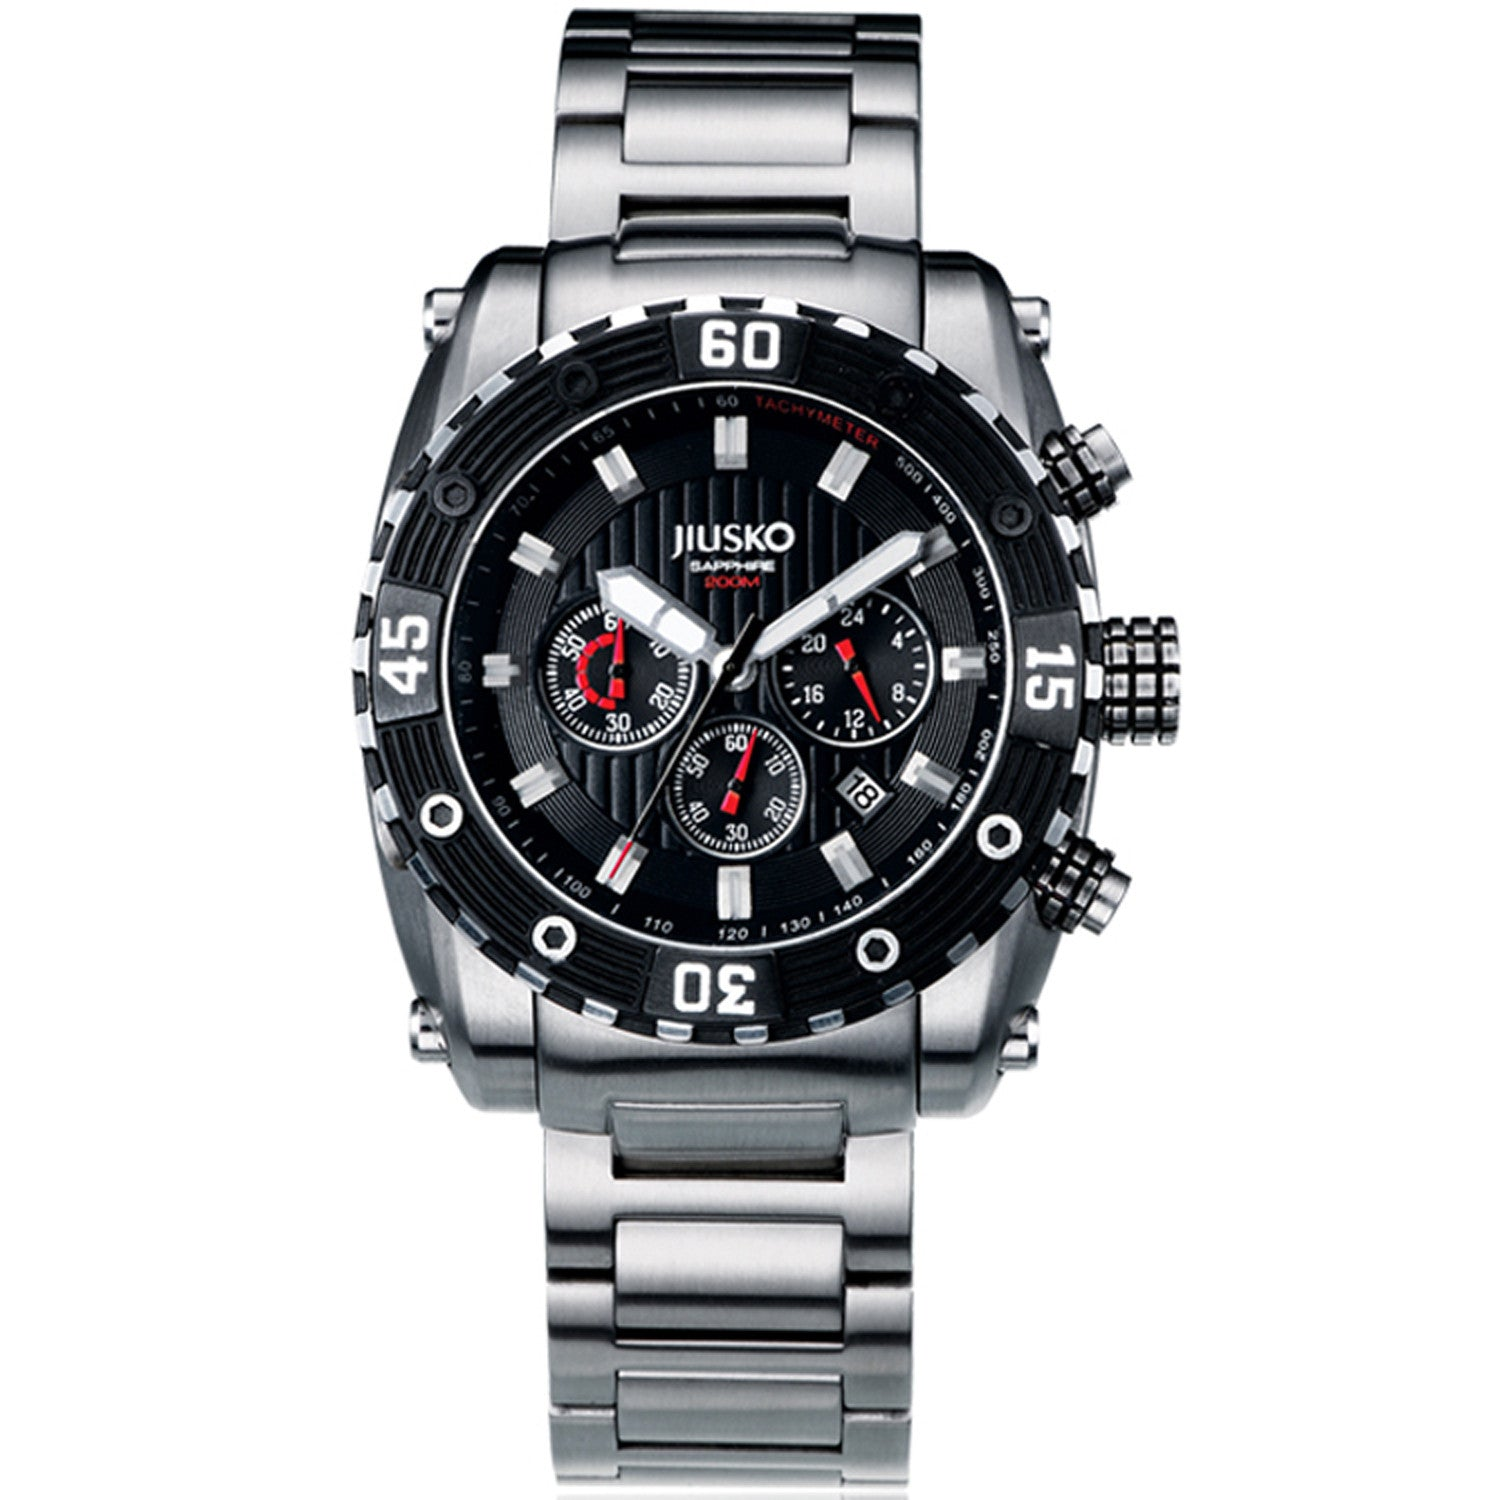 Jiusko Watch,Men's-Sport-Casual-Chronograph-Multi-Function-Quartz-Stainless Steel-300mm-52LSB02